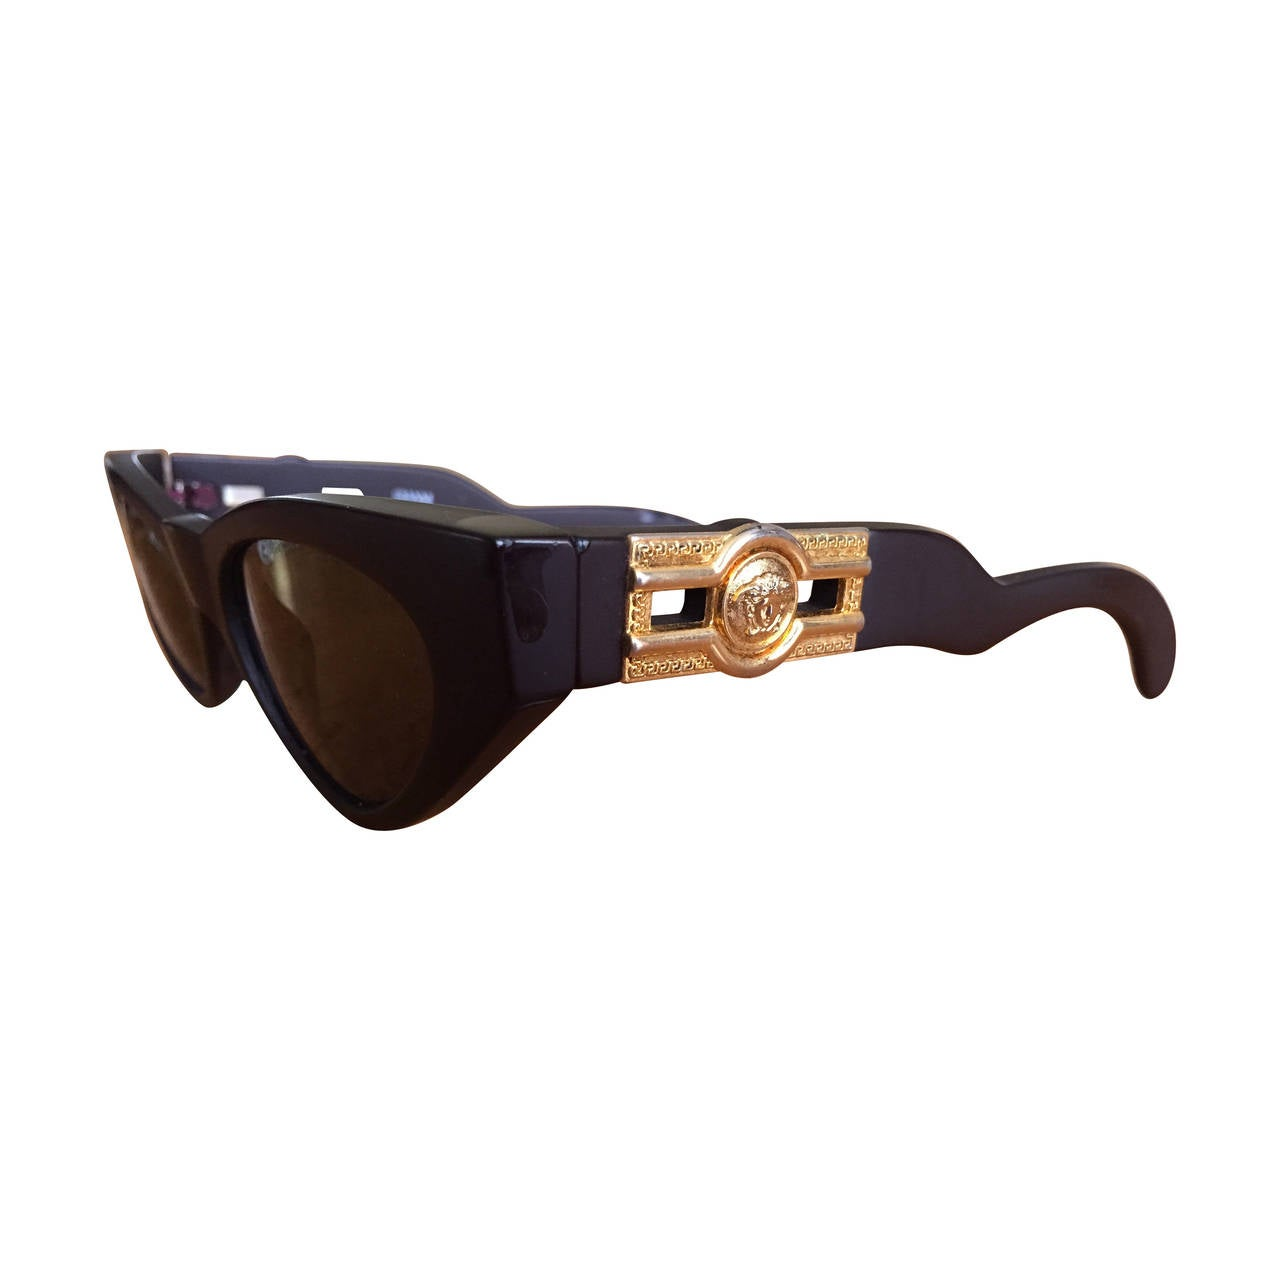 Versace Medusa Sunglasses  vintage gianni versace medusa head cat s eye sunglasses for